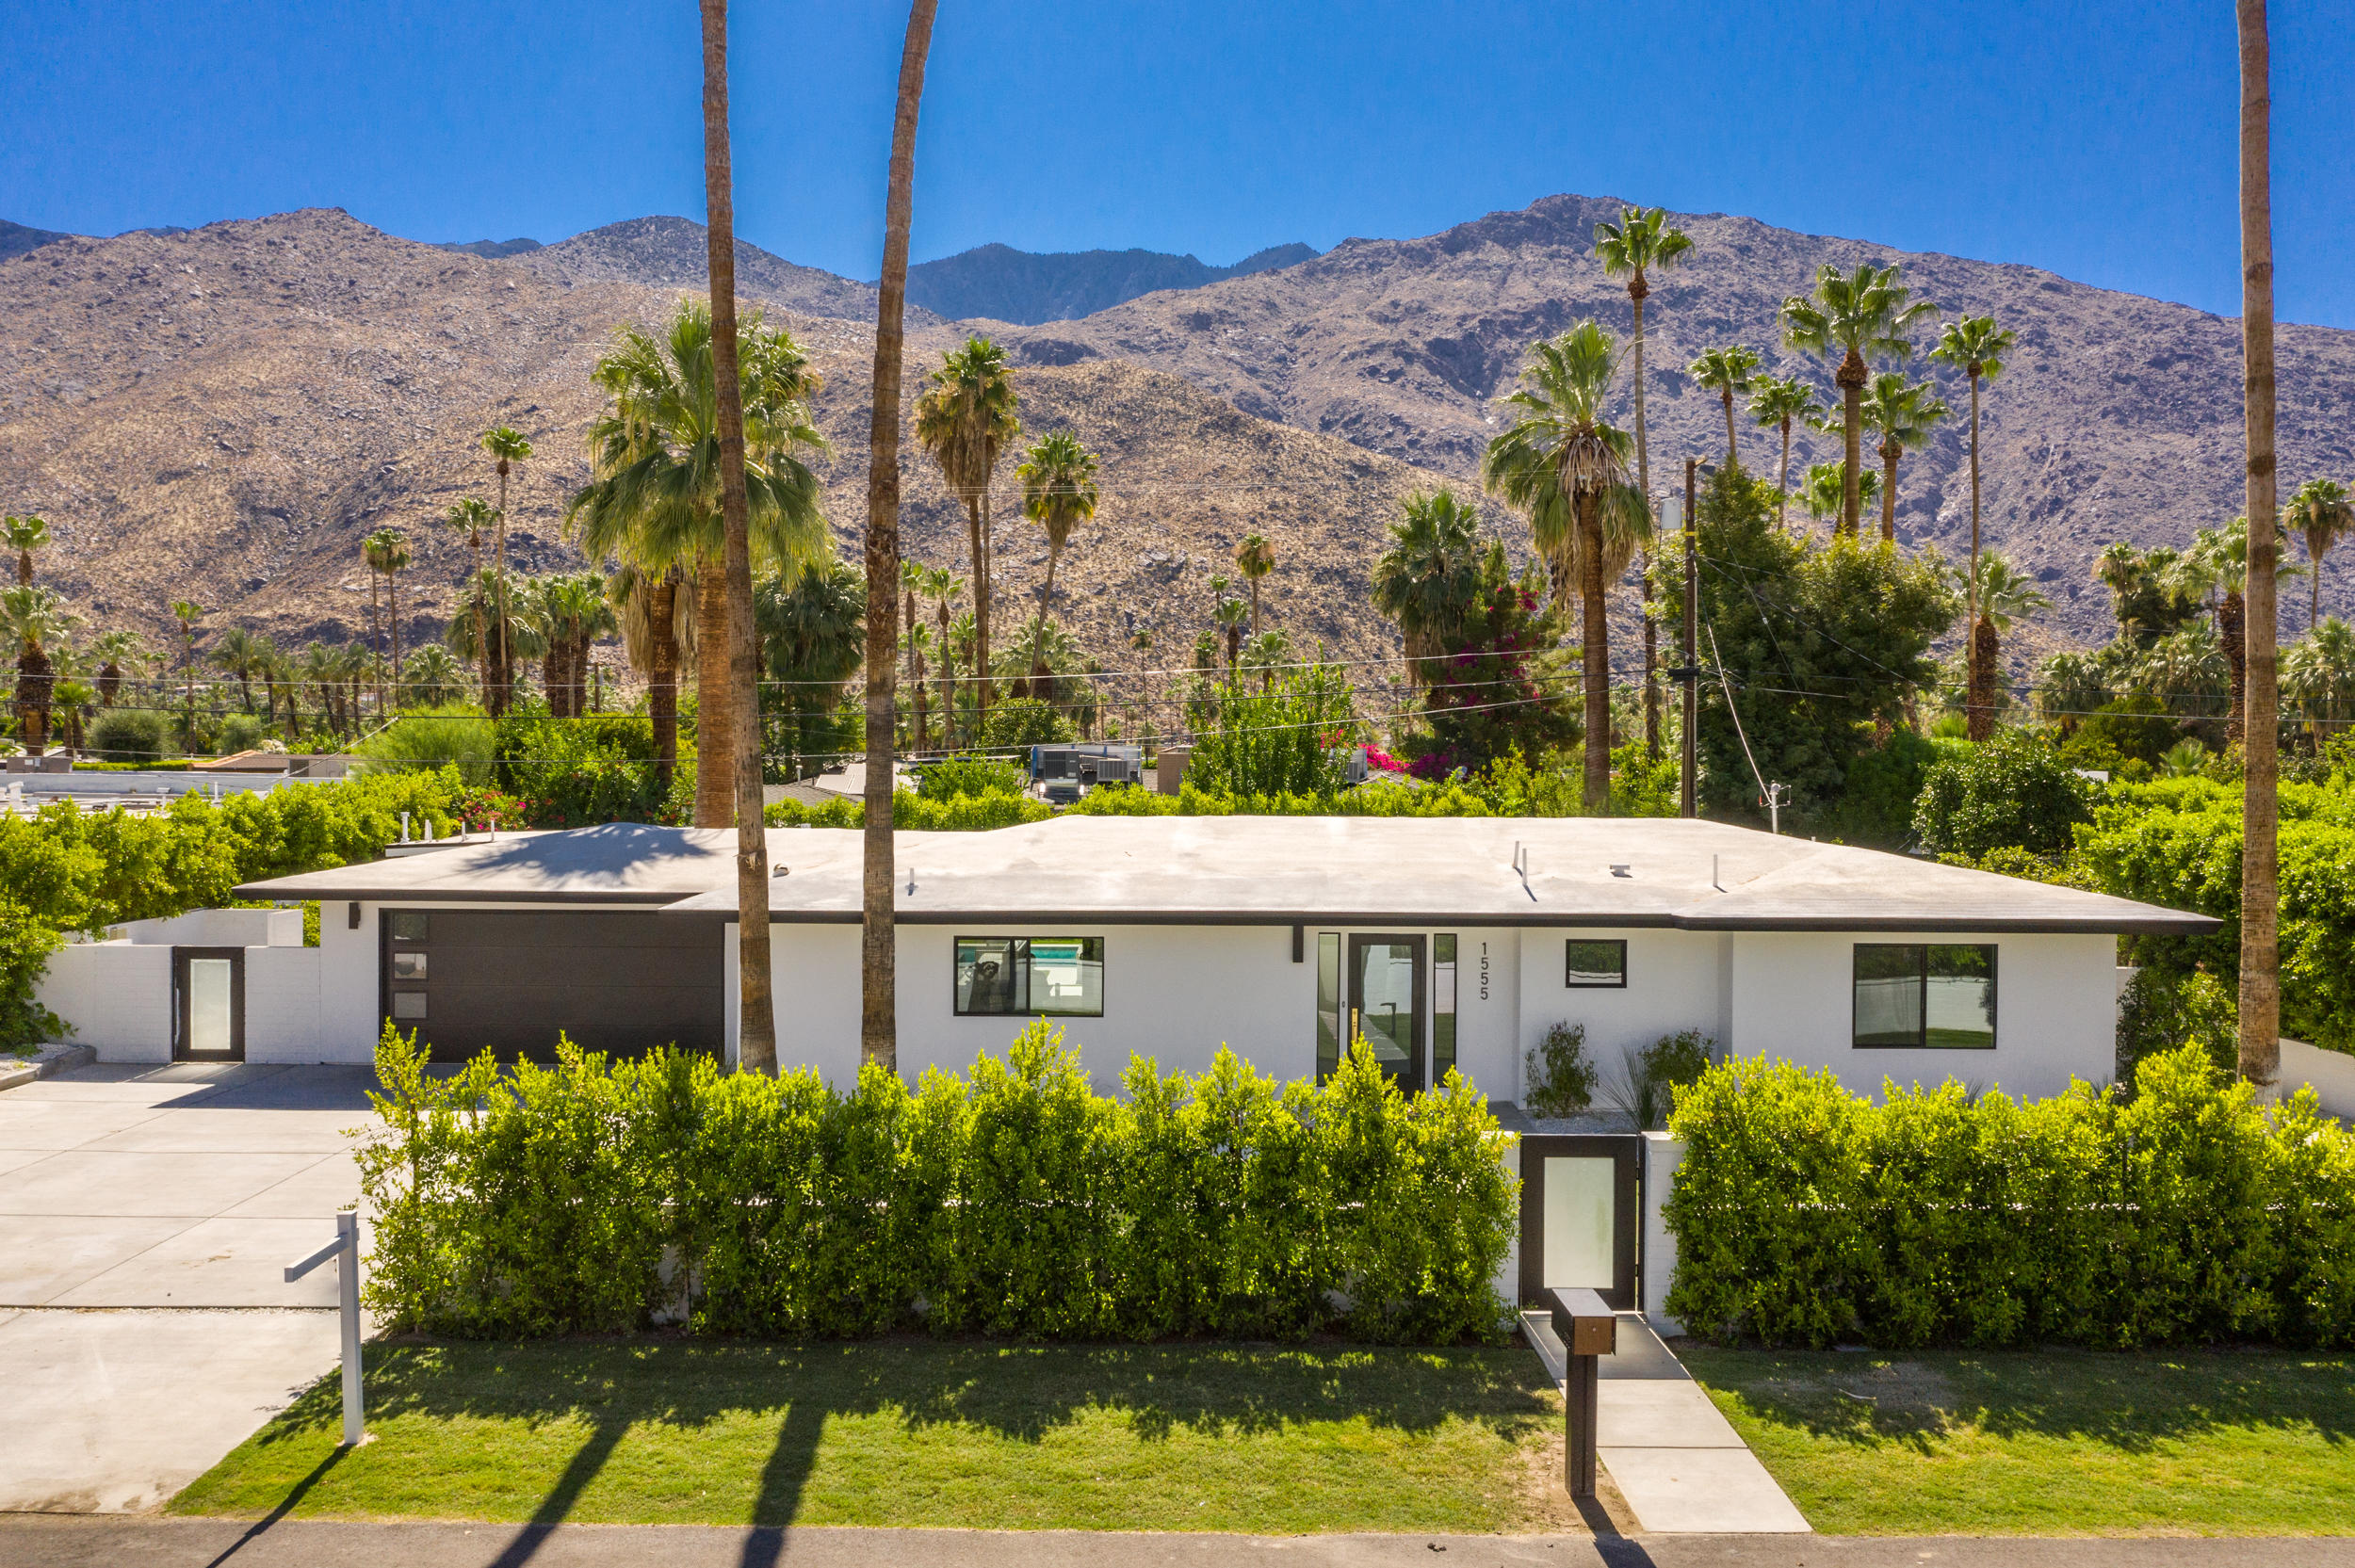 Photo of 1555 S Indian Trail, Palm Springs, CA 92264